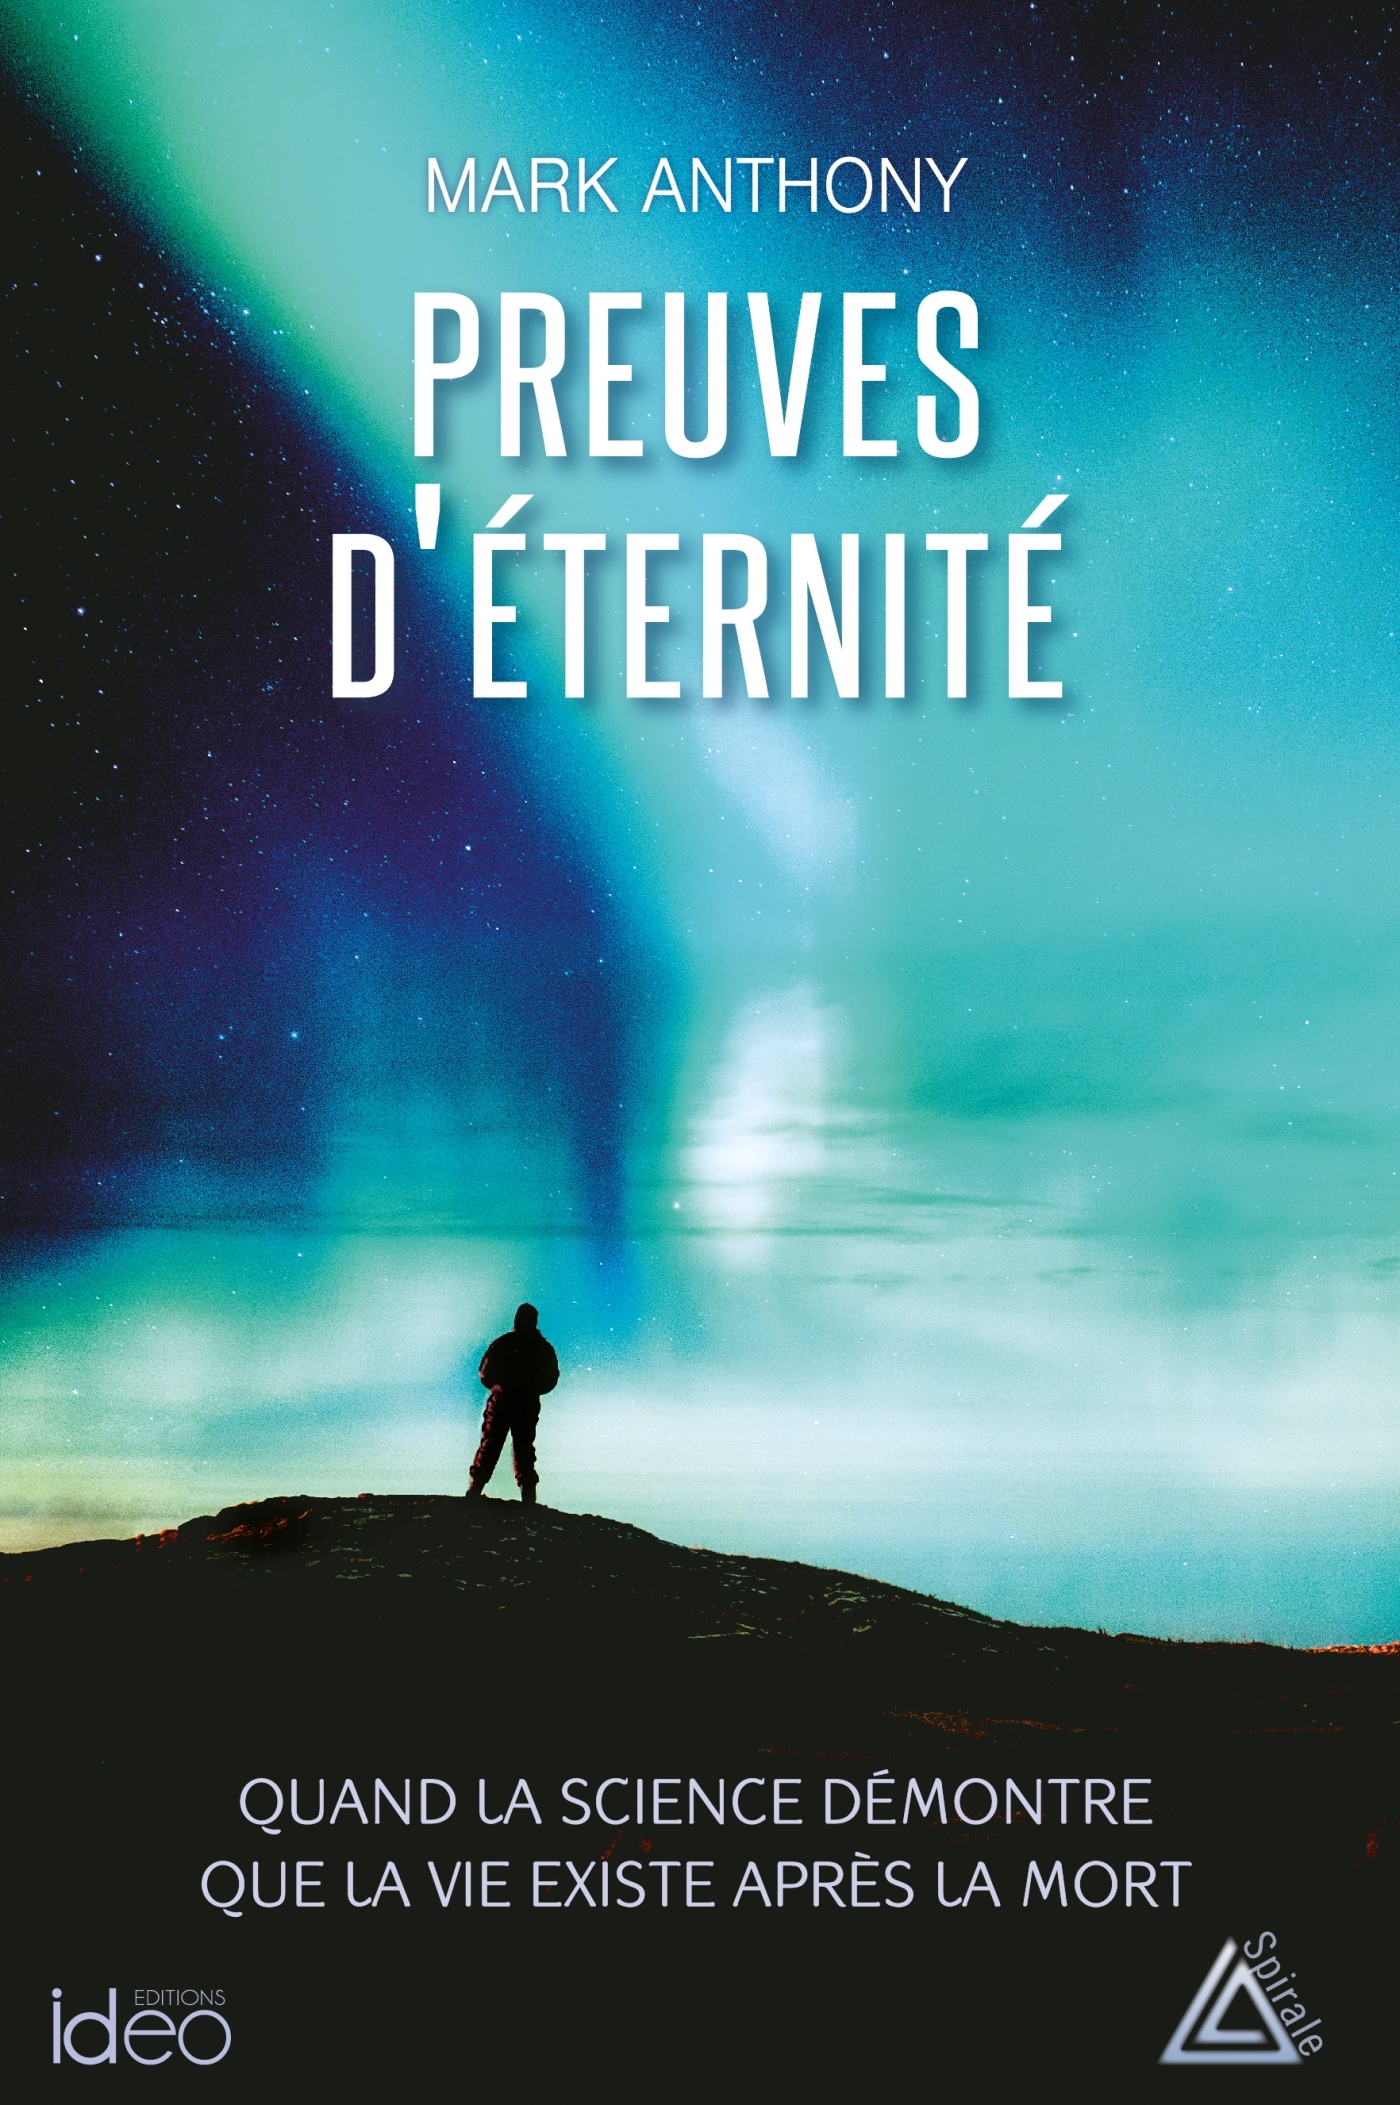 PREUVES D'ETERNITE